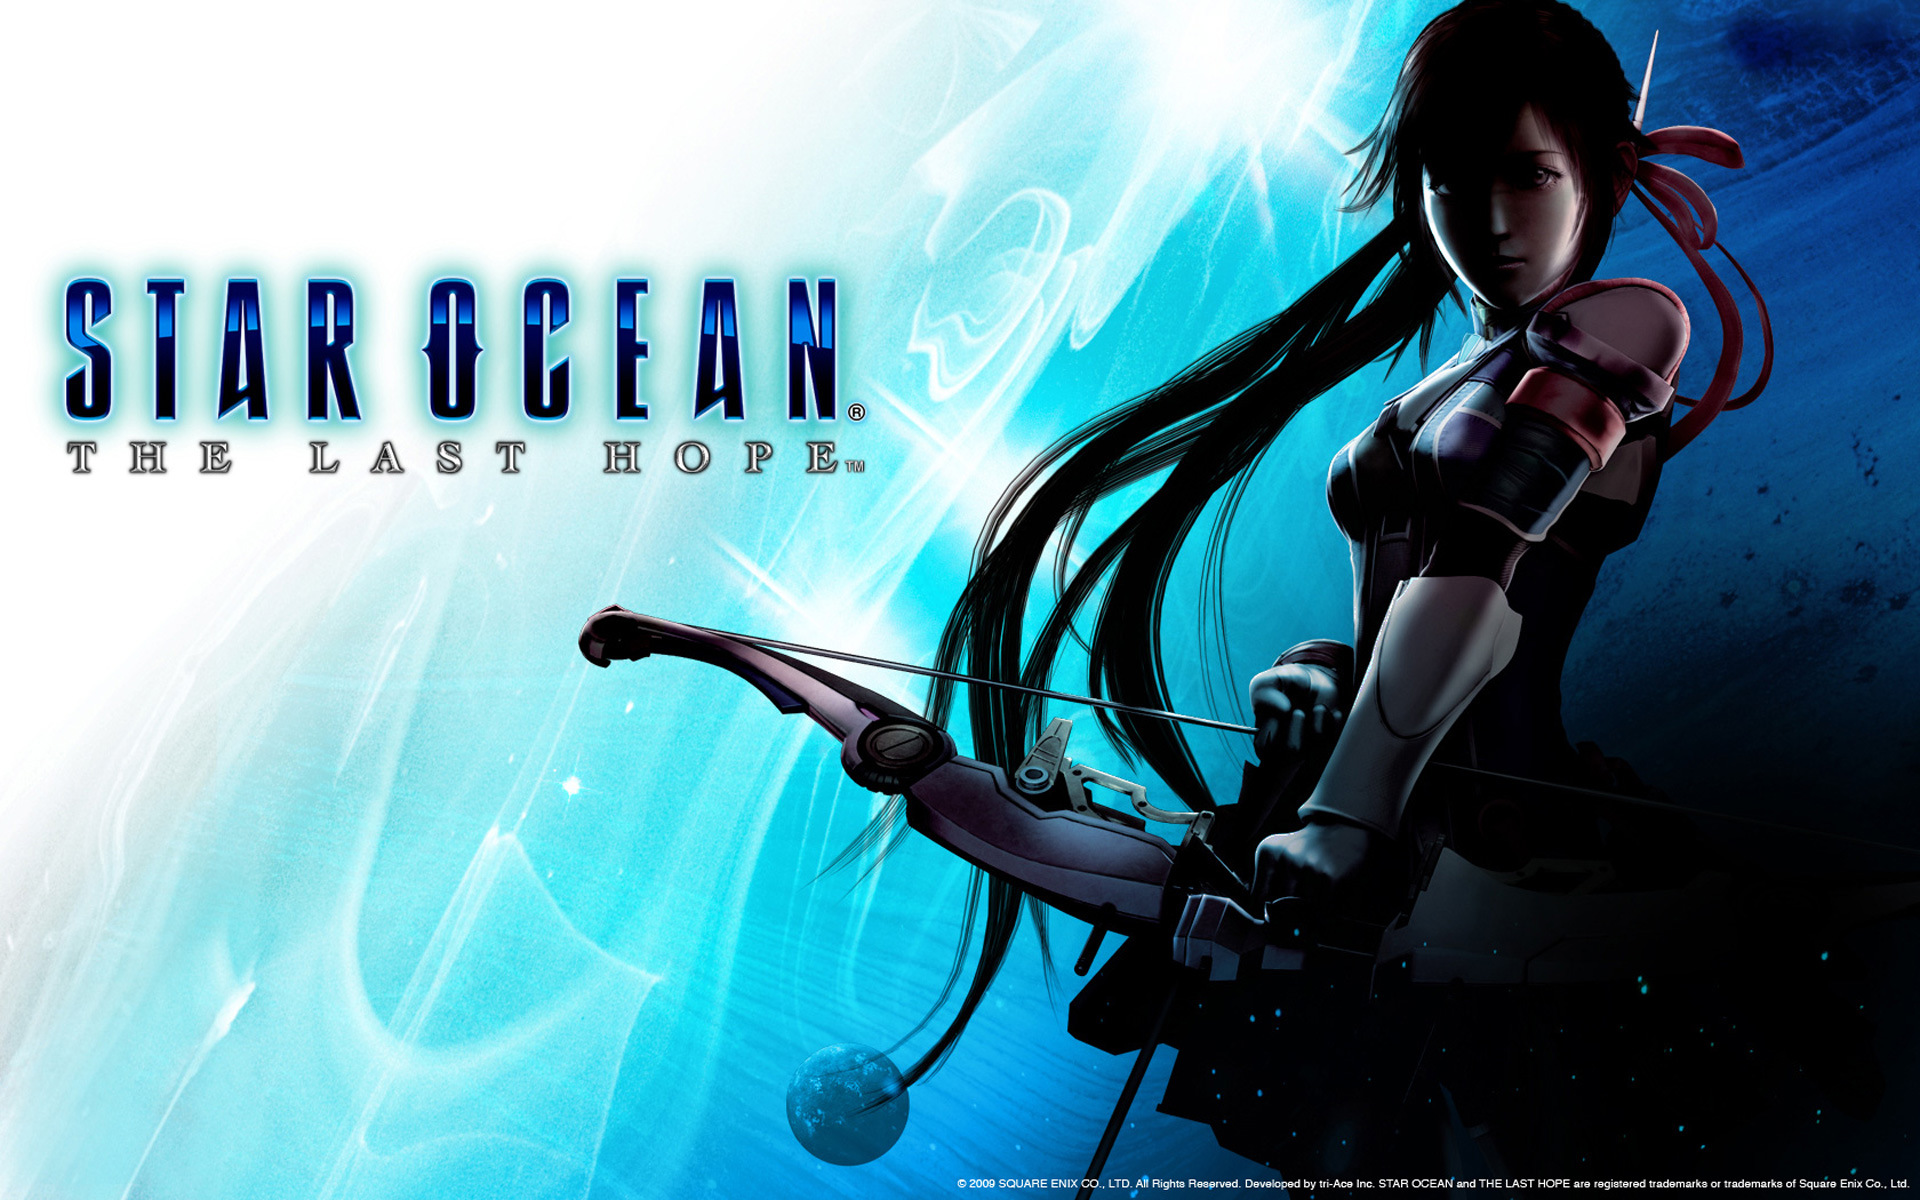 star-ocean-the-last-hope-02-1920x1200.jpg